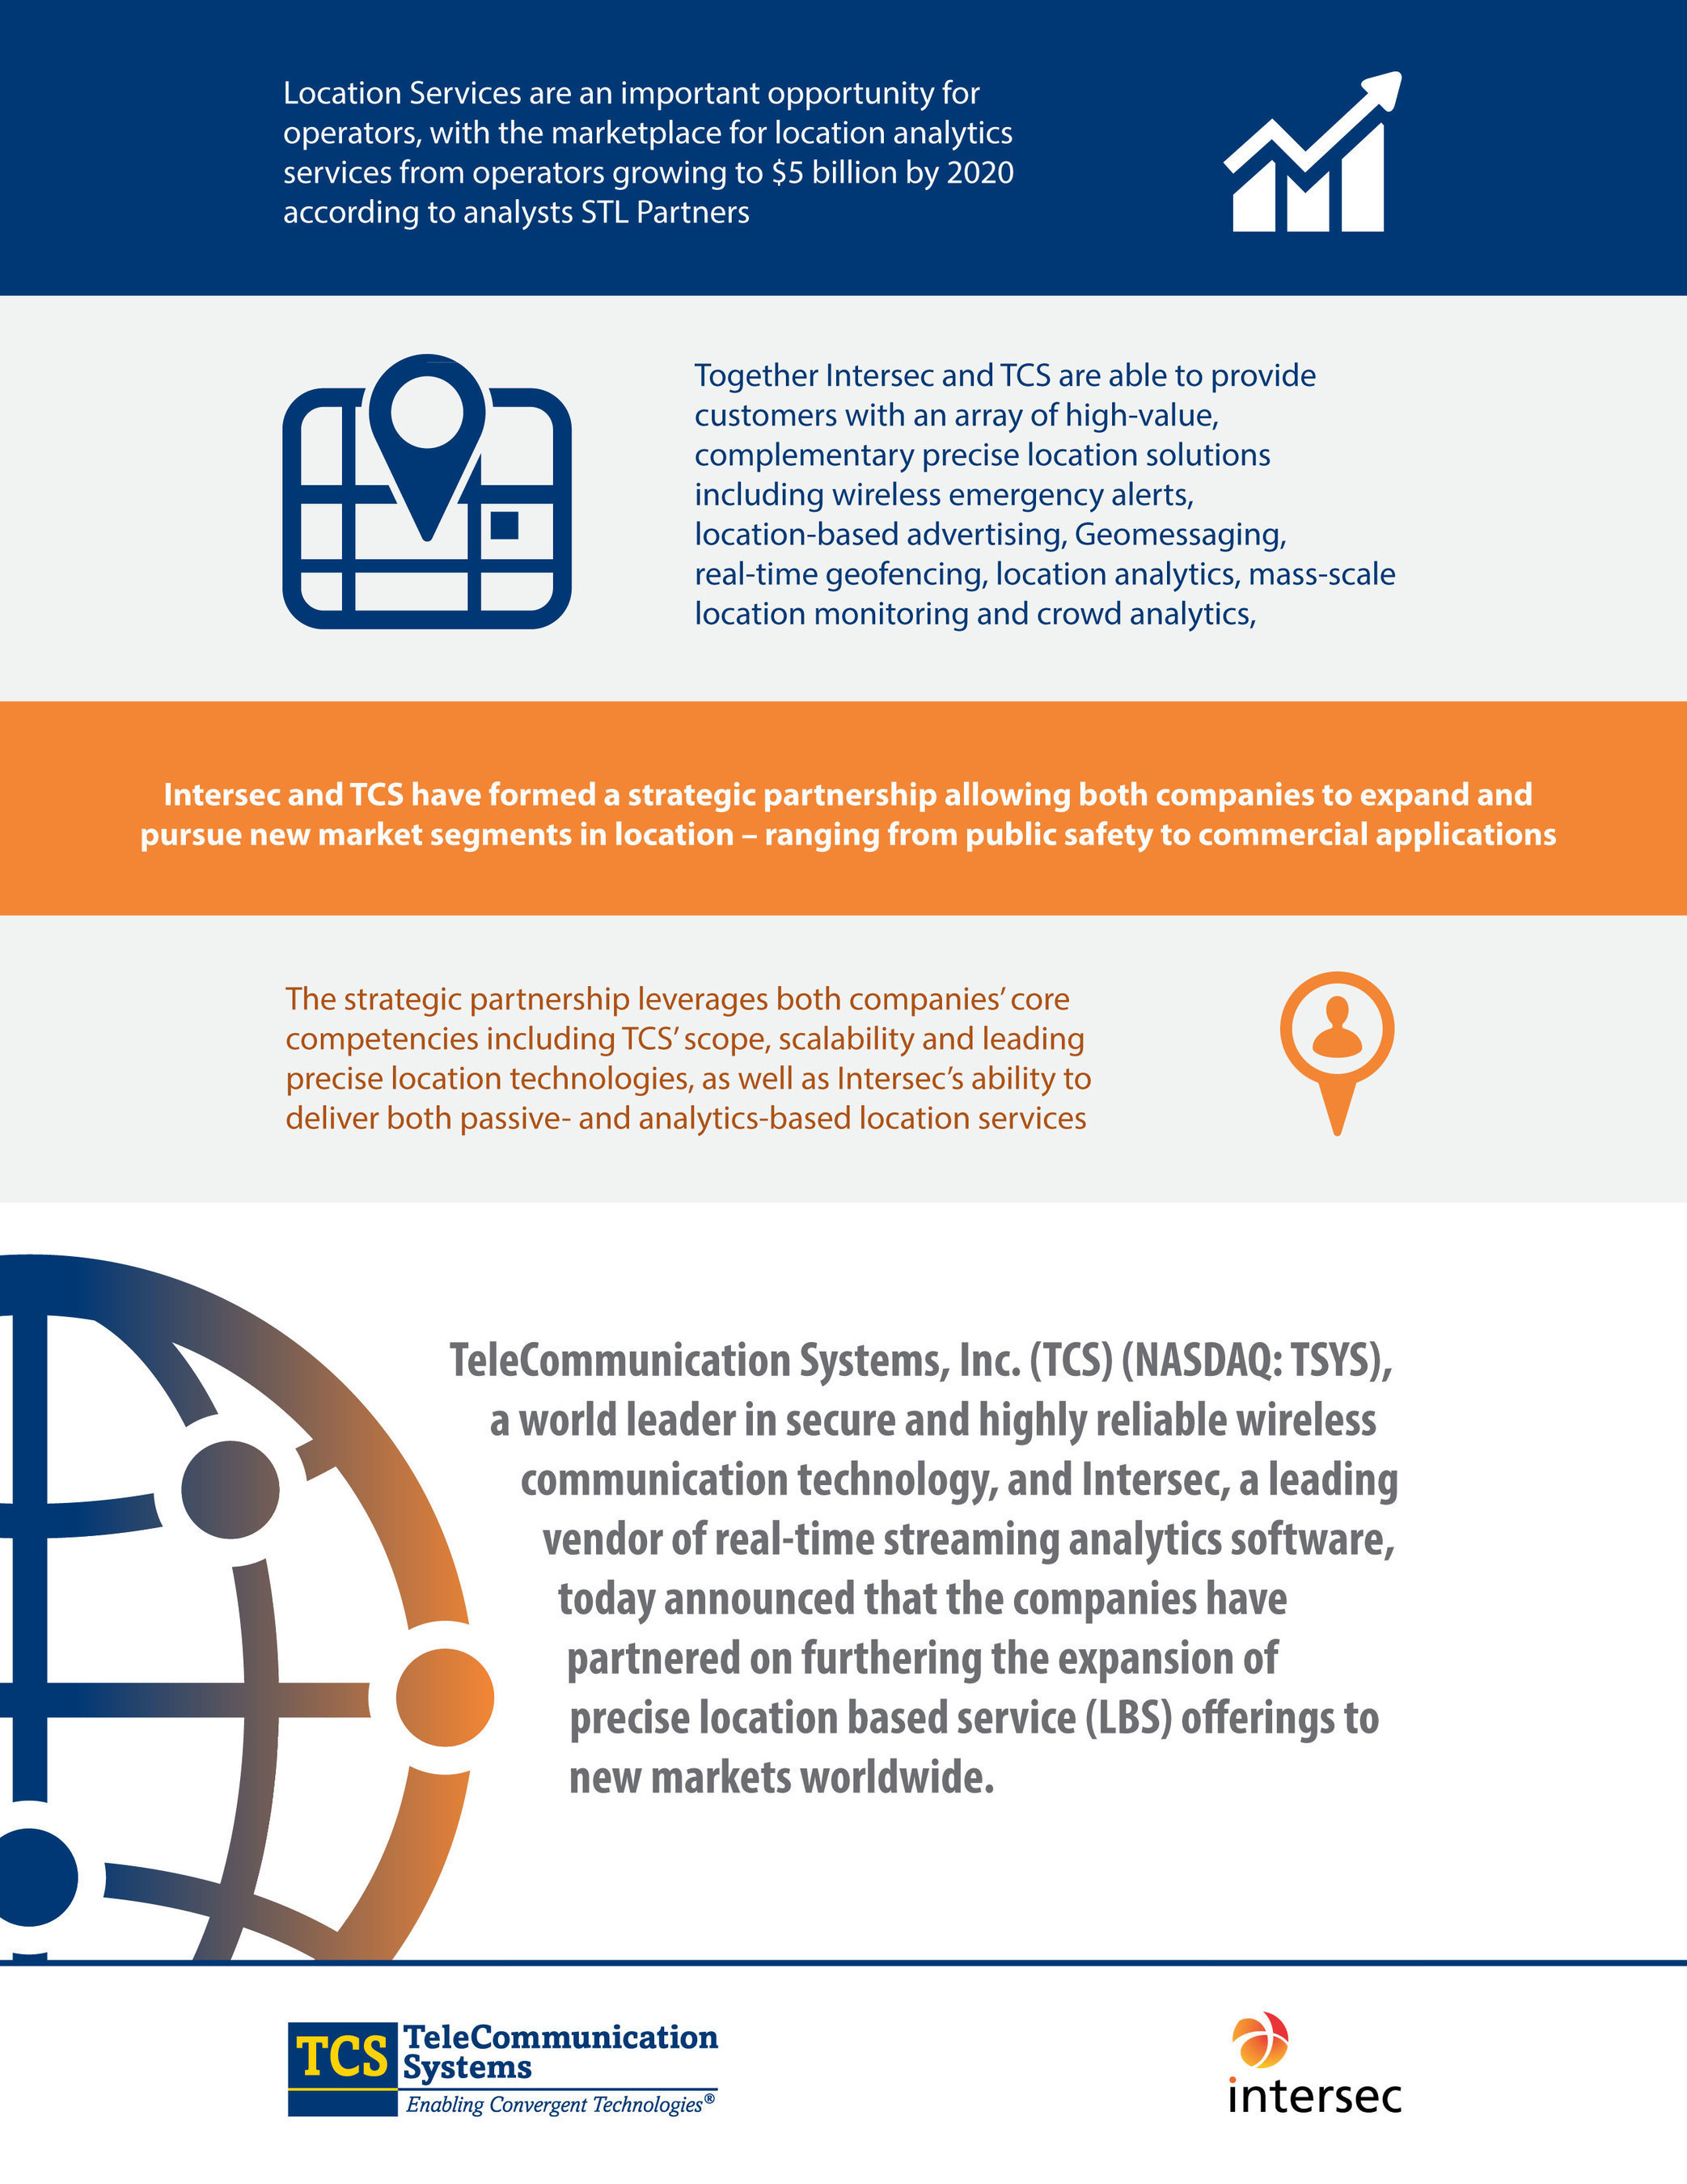 TeleCommunication Systems and Intersec Partner to Expand Location-Based Service (LBS) Offerings to Markets Worldwide